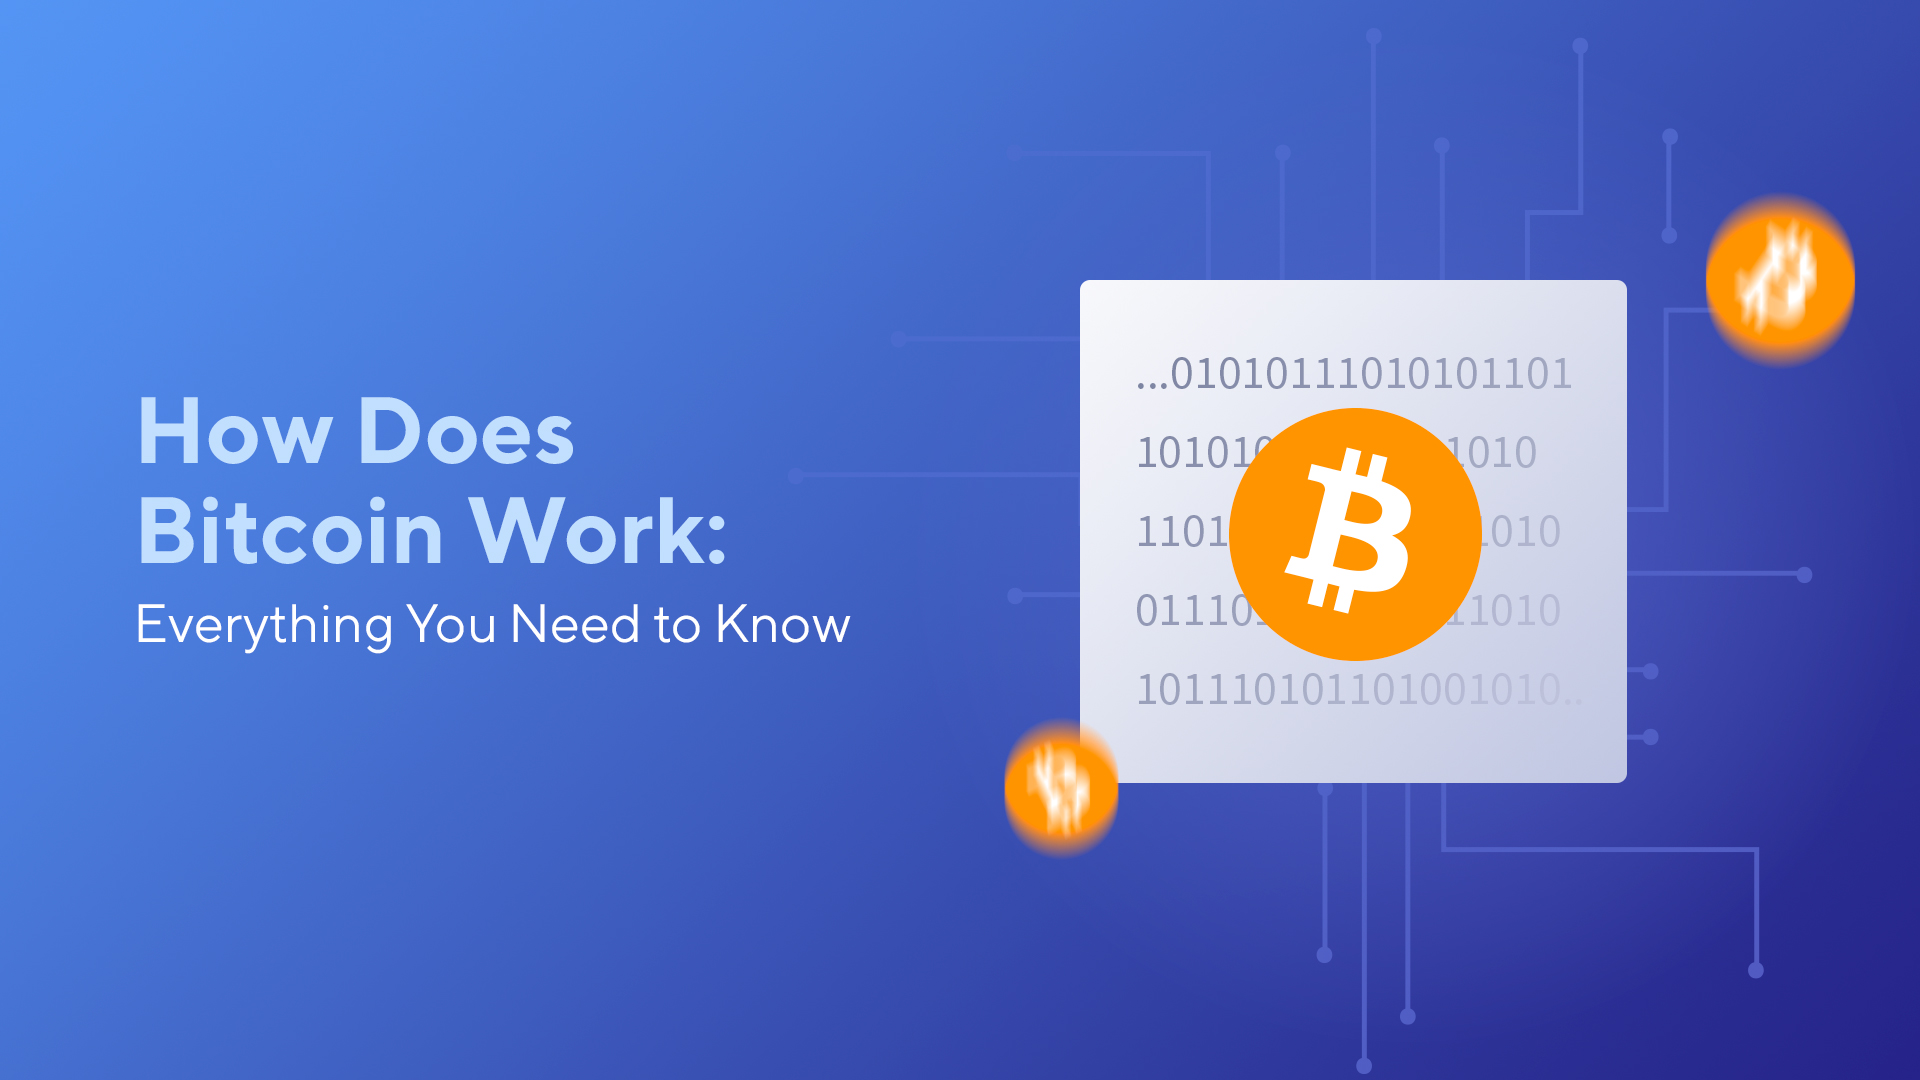 How Does Bitcoin Work: Everything You Need to Know